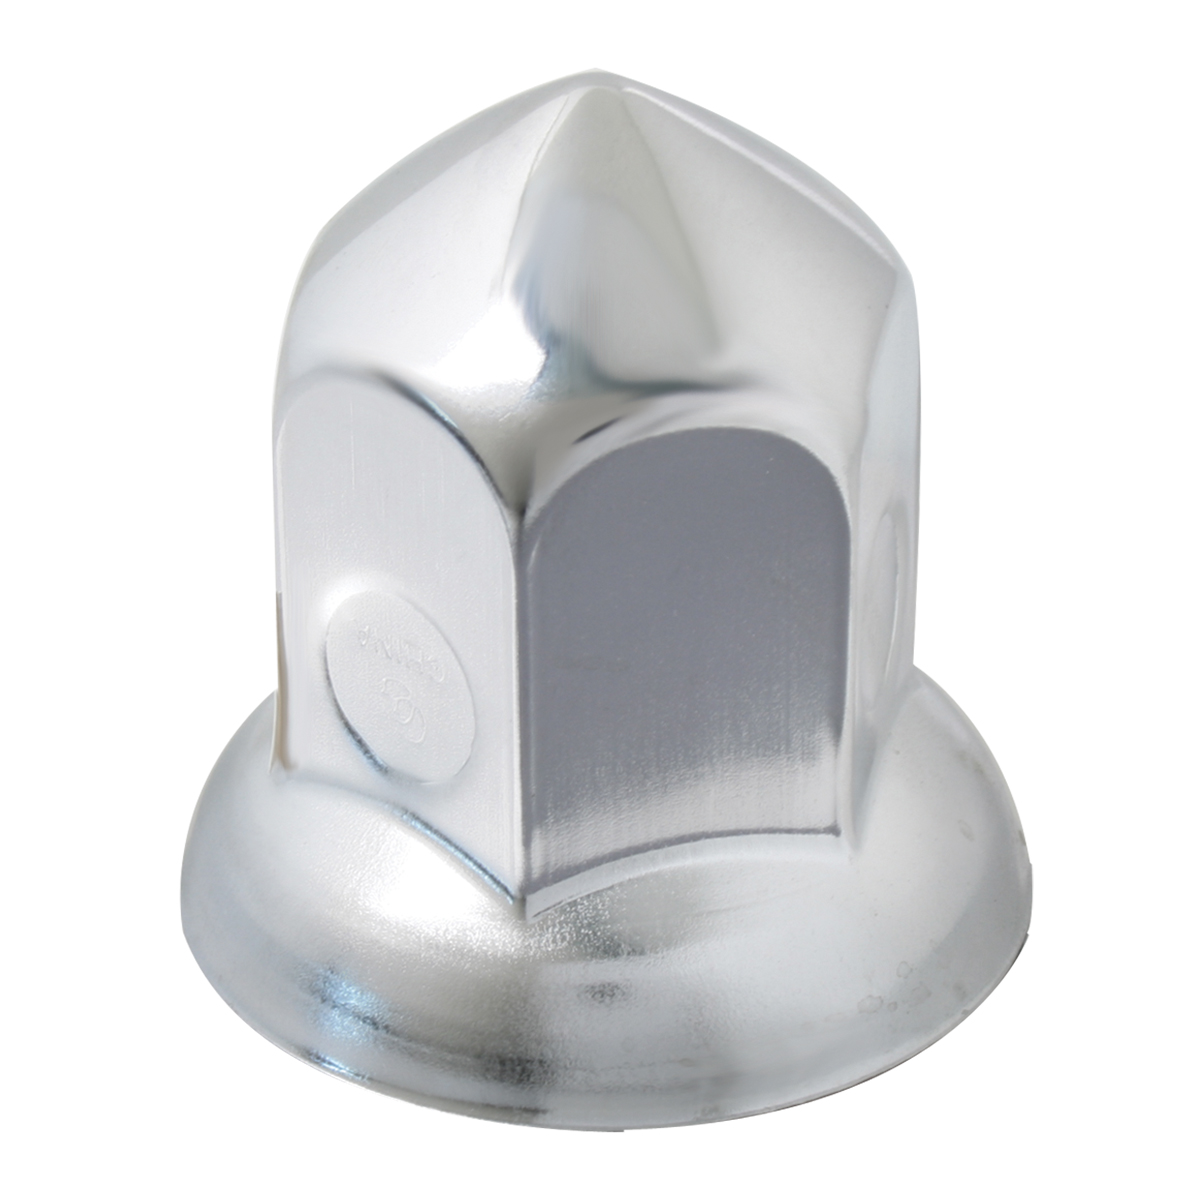 10273 Chrome Steel Cone Style Push-On Lug Nut Cover w/ Flange